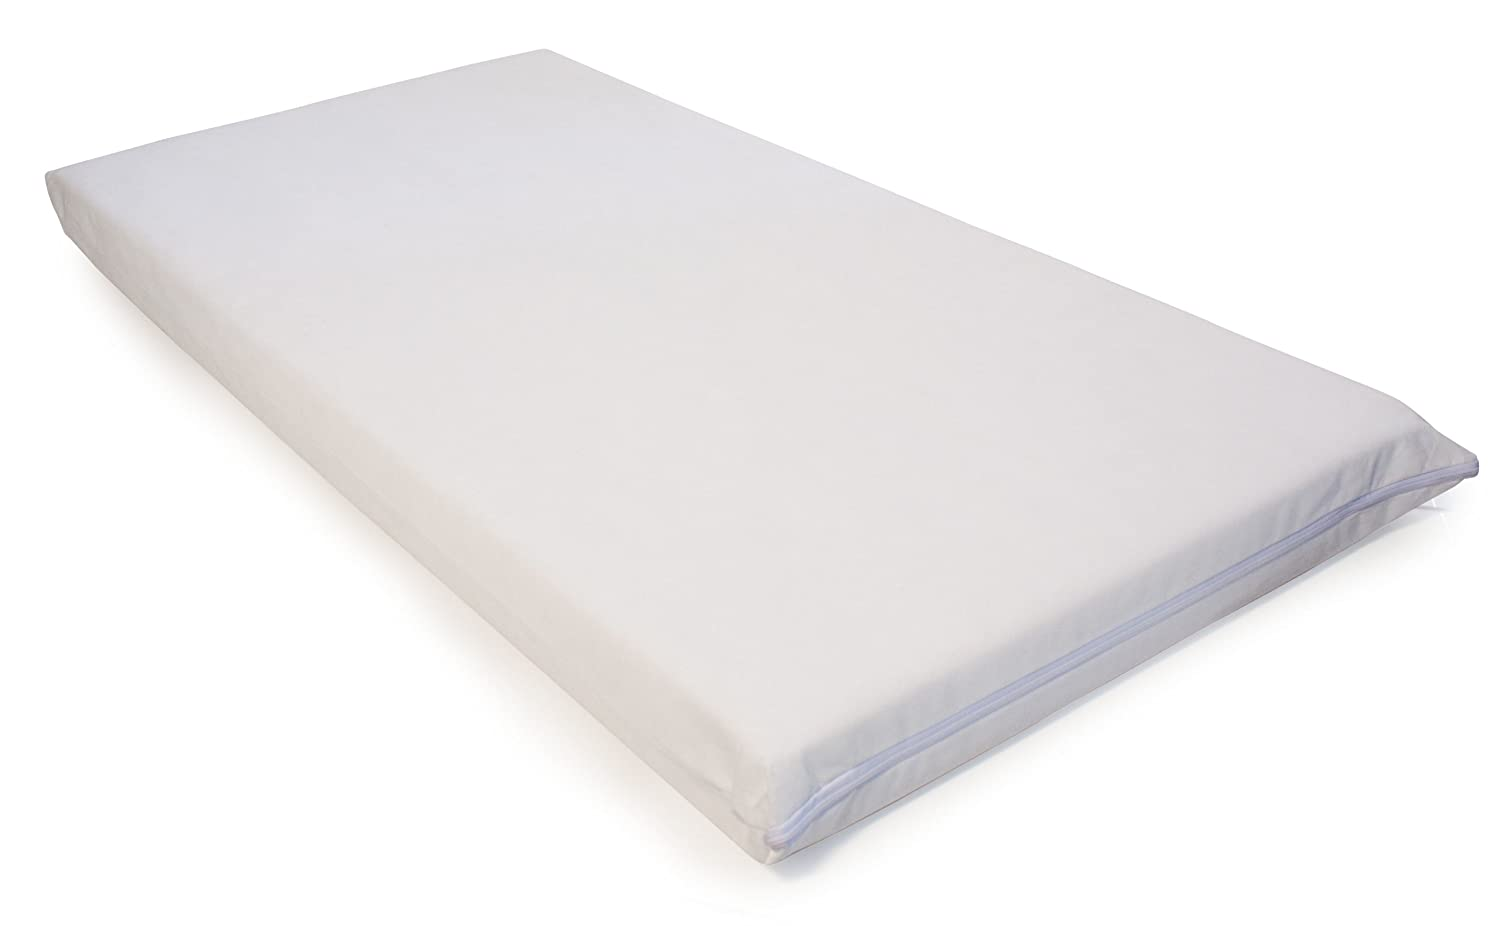 Cosatto Comfi Kip Cot Bed Mattress - 140 x 70 x 10 cm CT2649